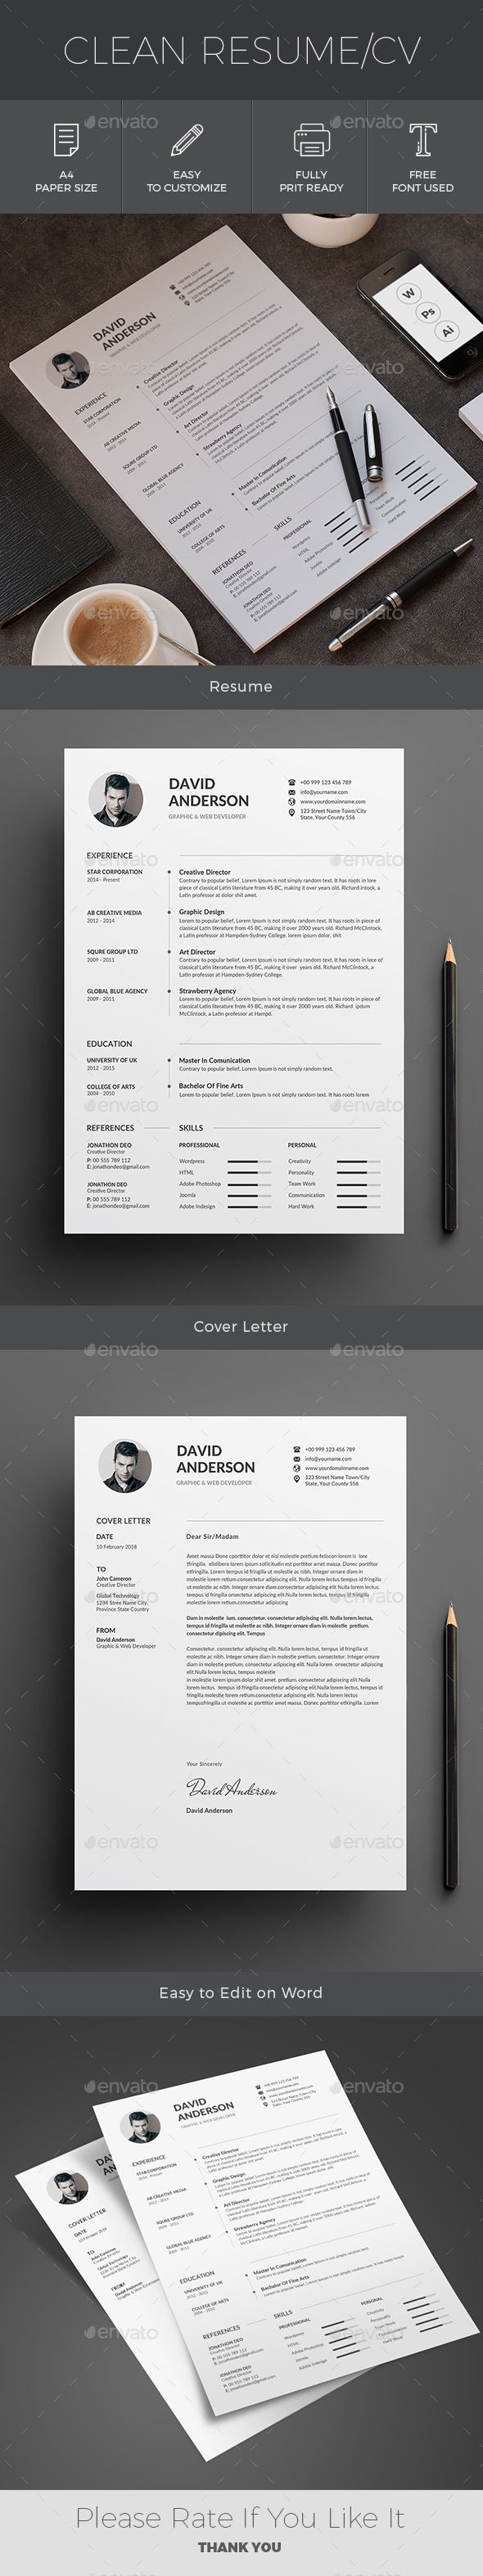 Resume Cv Templates Free Download%0A cover letter examples sales representative